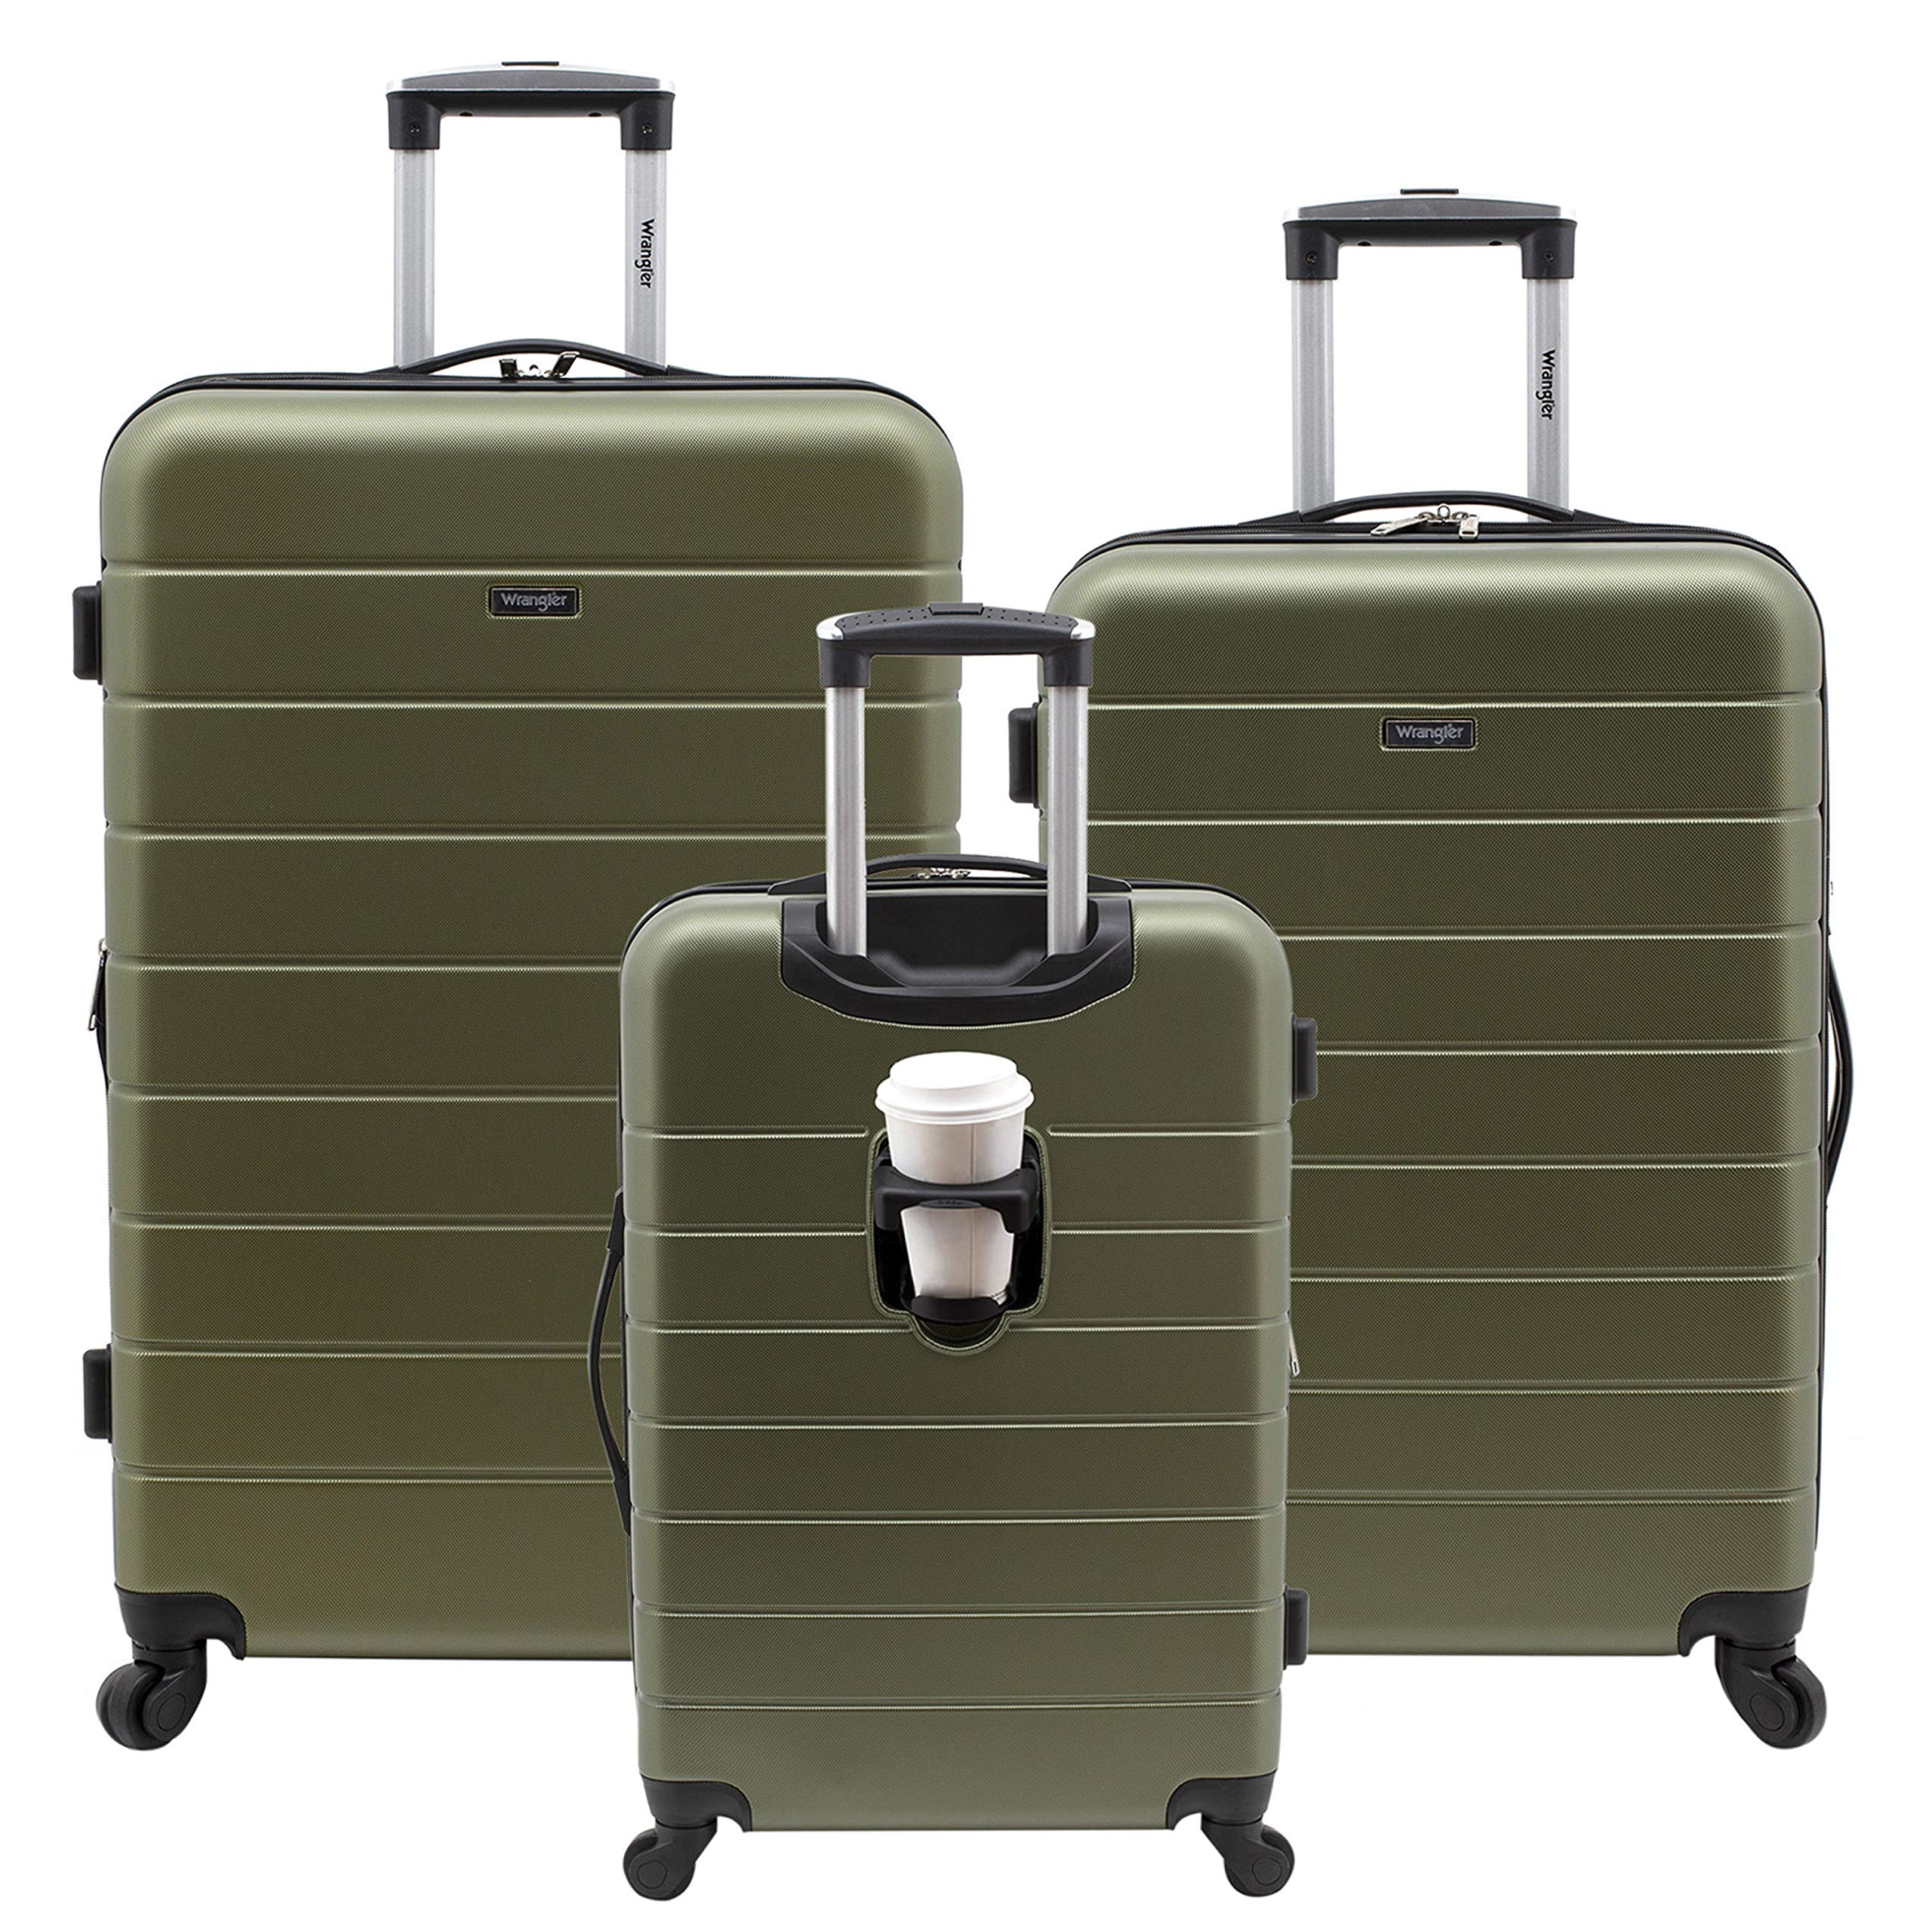 Wrangler 3 Piece Luggage Set Smart Hardside with USB Charging Port, Olive Green by Wrangler